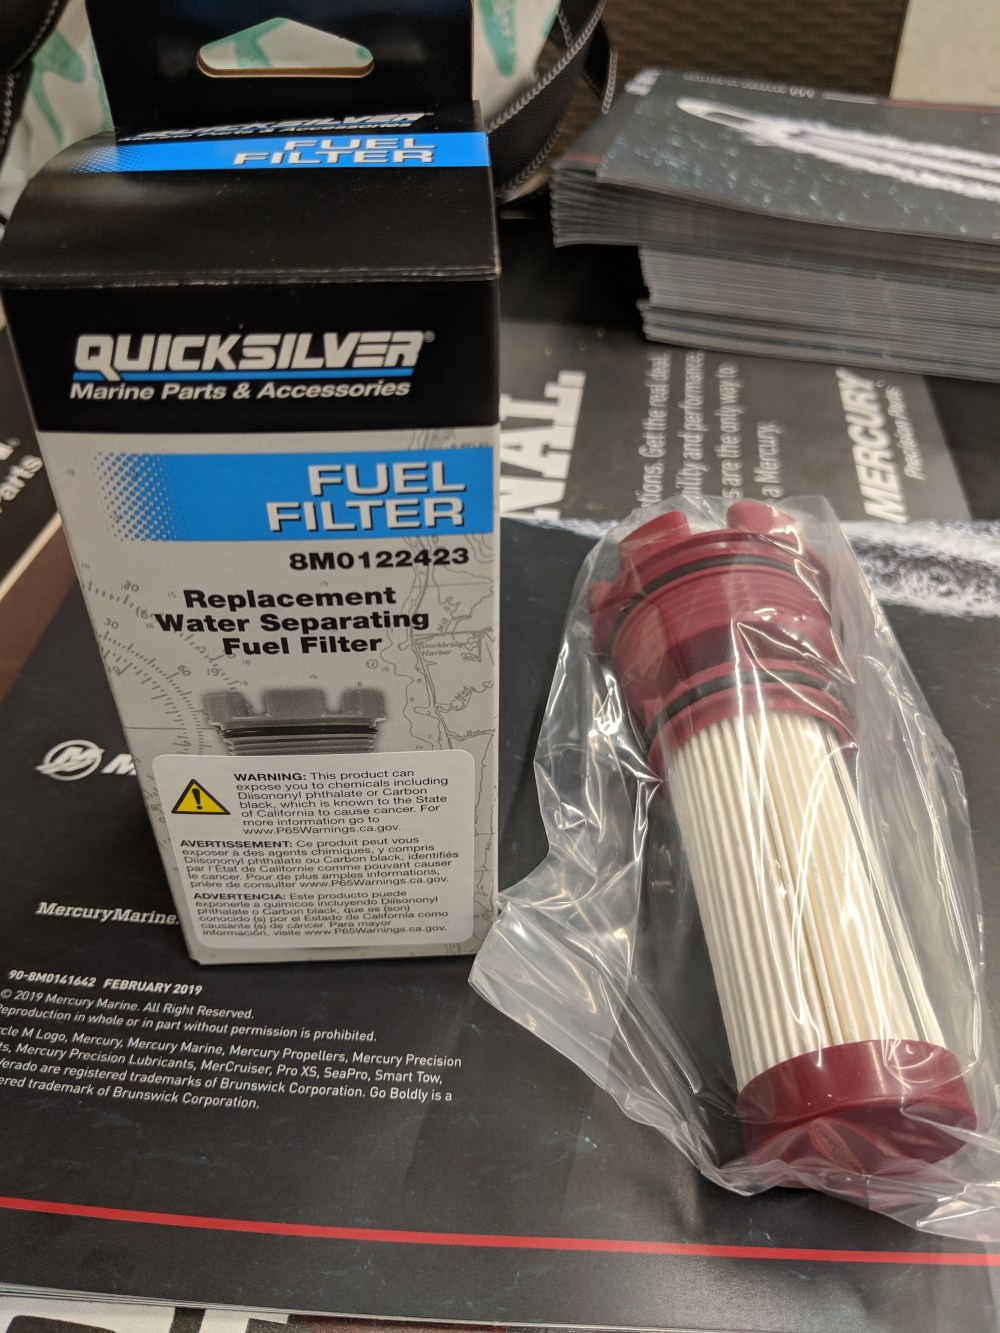 medium resolution of home quicksilver quicksilver replacement water separating fuel filter 8m0122423